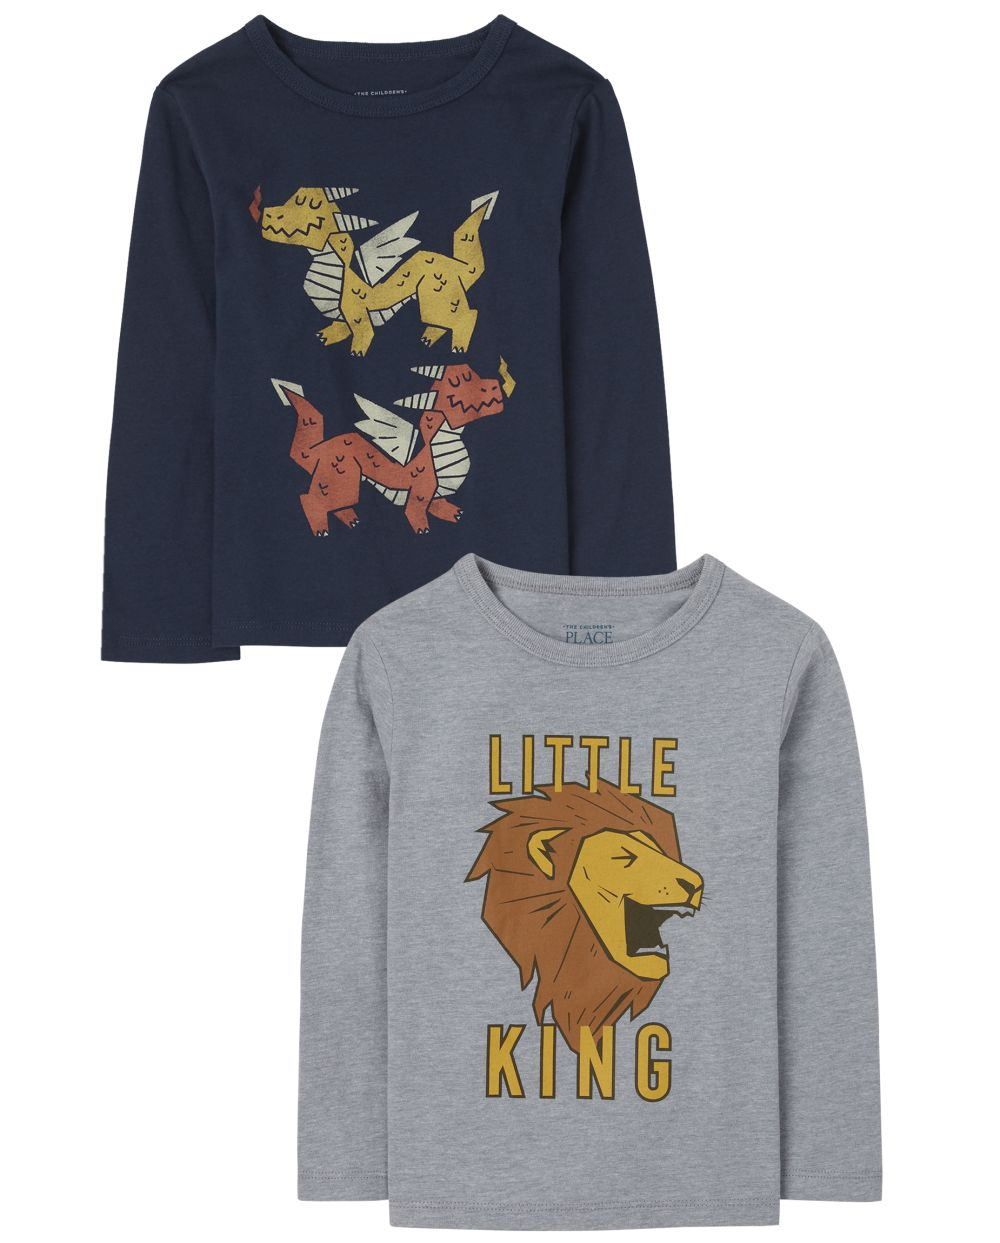 Baby And Toddler Boys Animal Graphic Tee 2-Pack